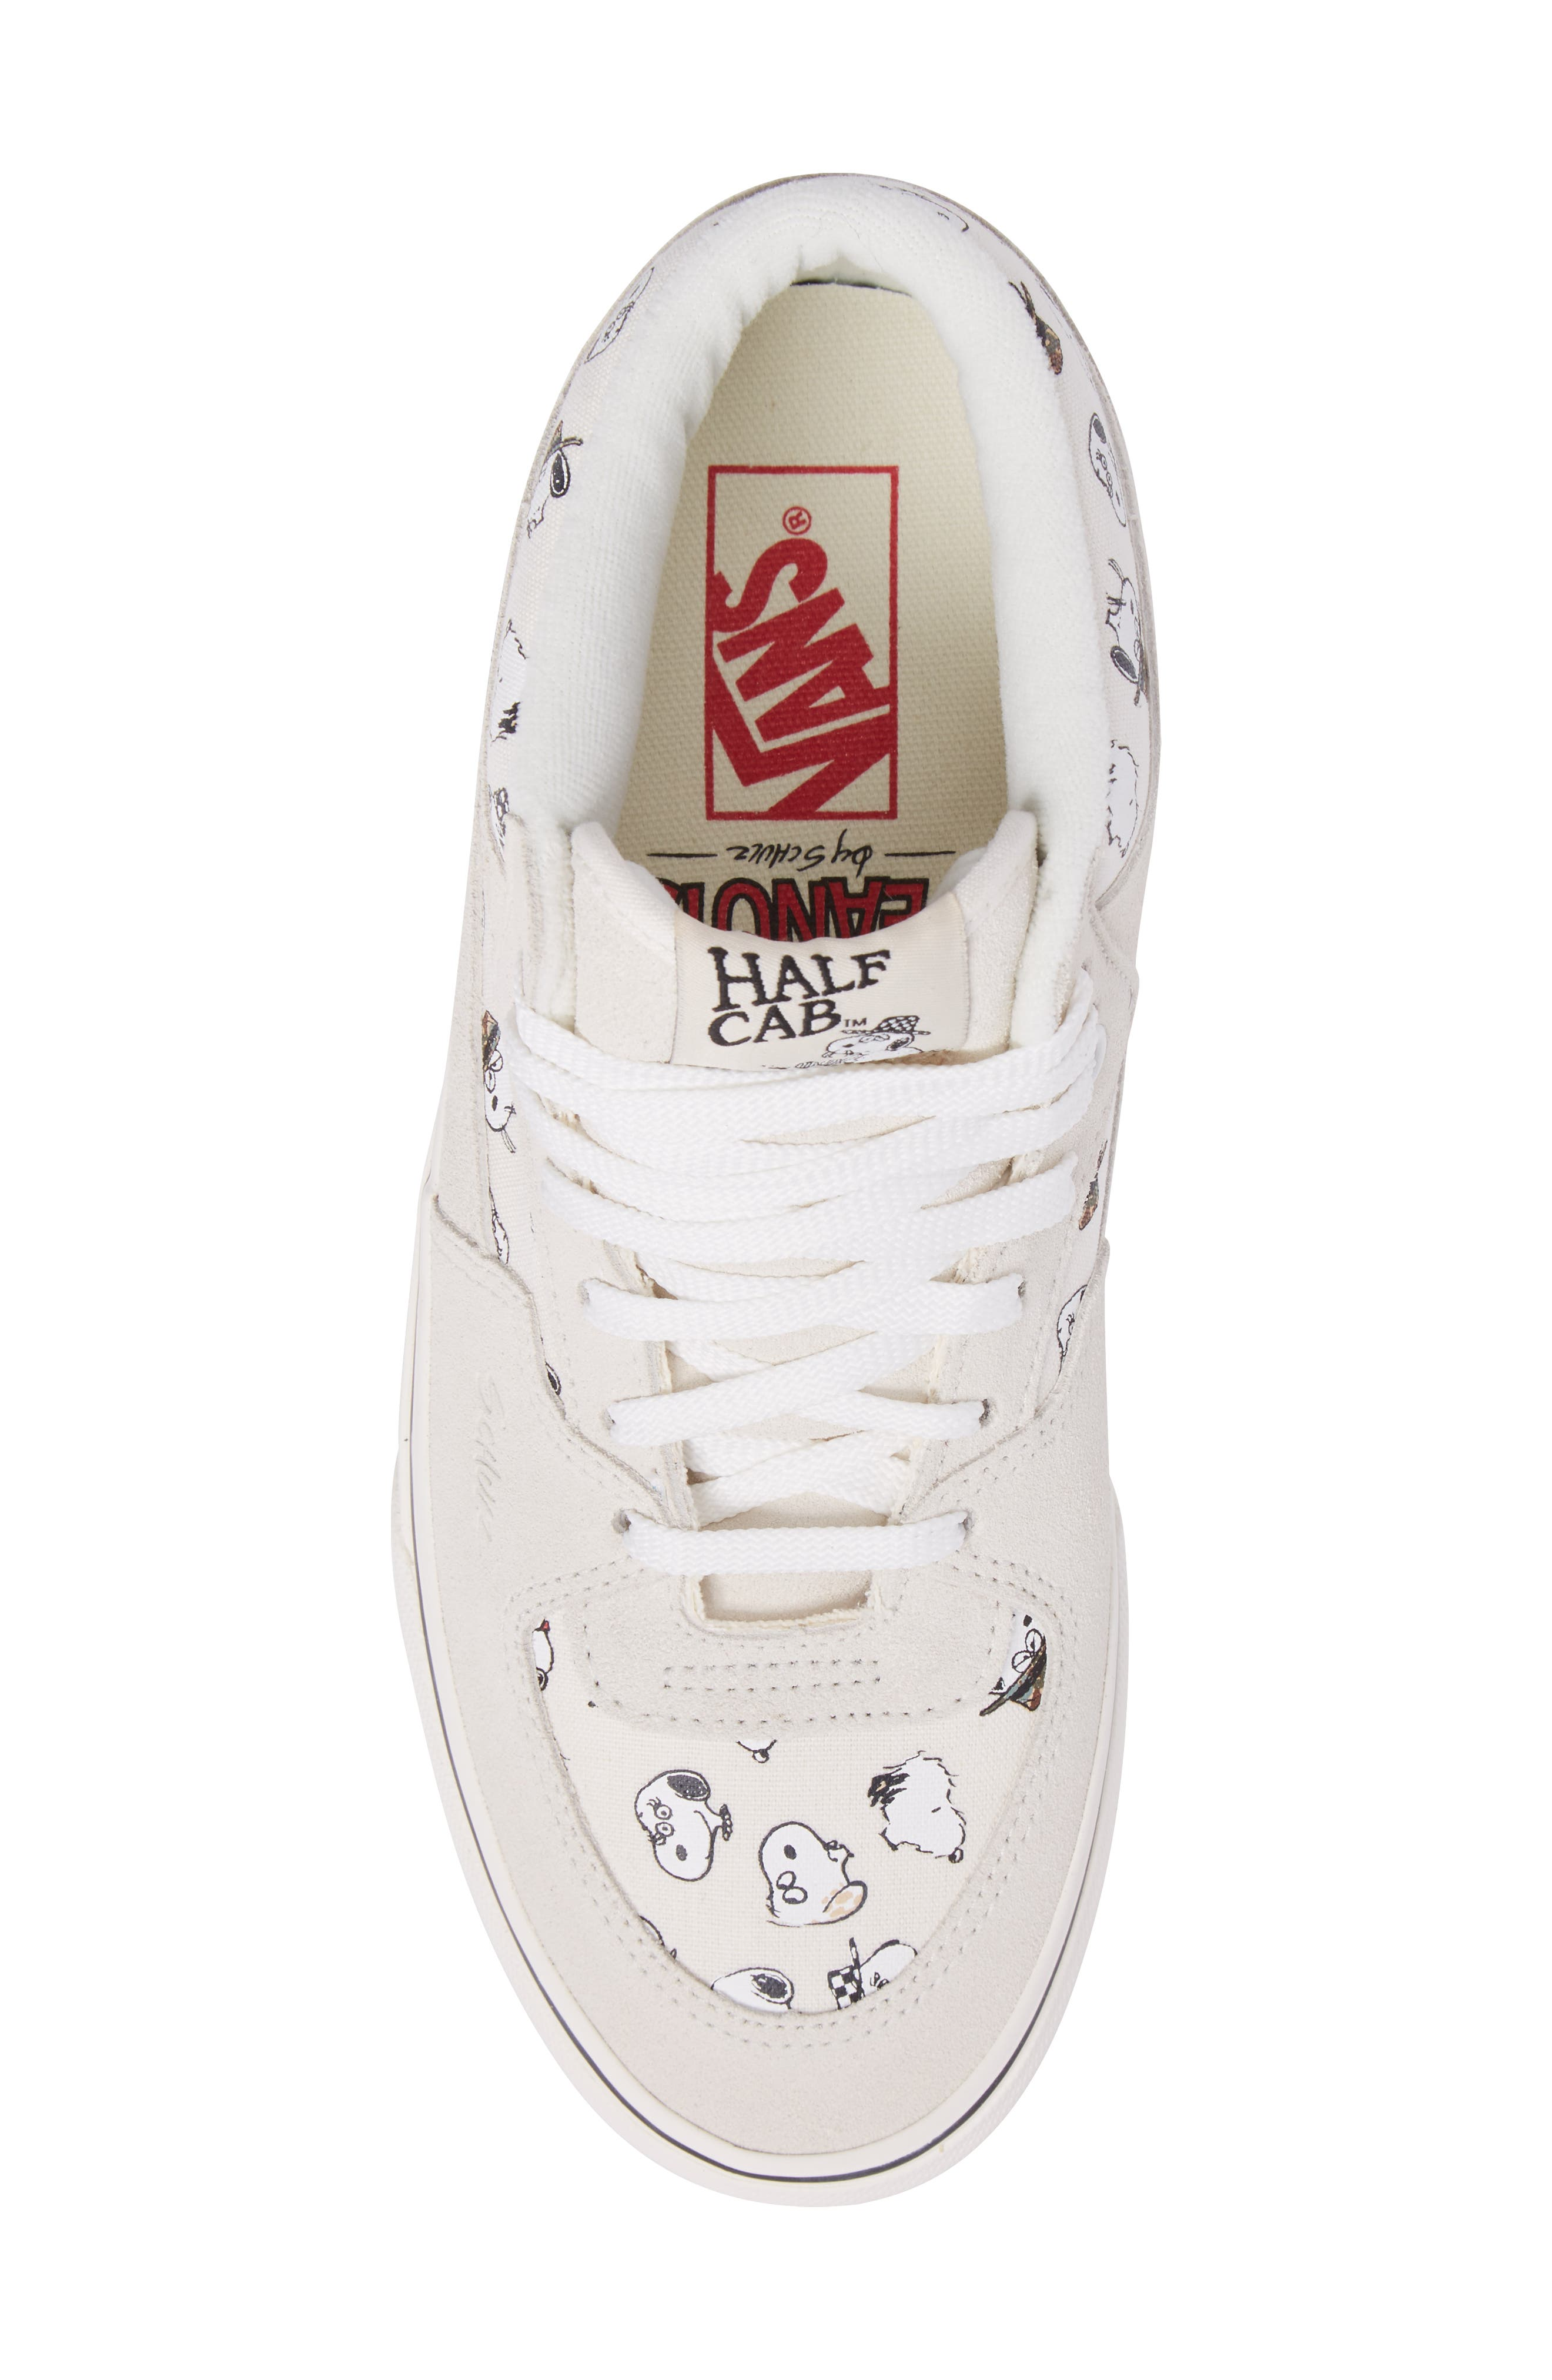 x Peanuts<sup>®</sup> Half Cab Sneaker,                             Alternate thumbnail 5, color,                             Marshmallow Canvas/Suede